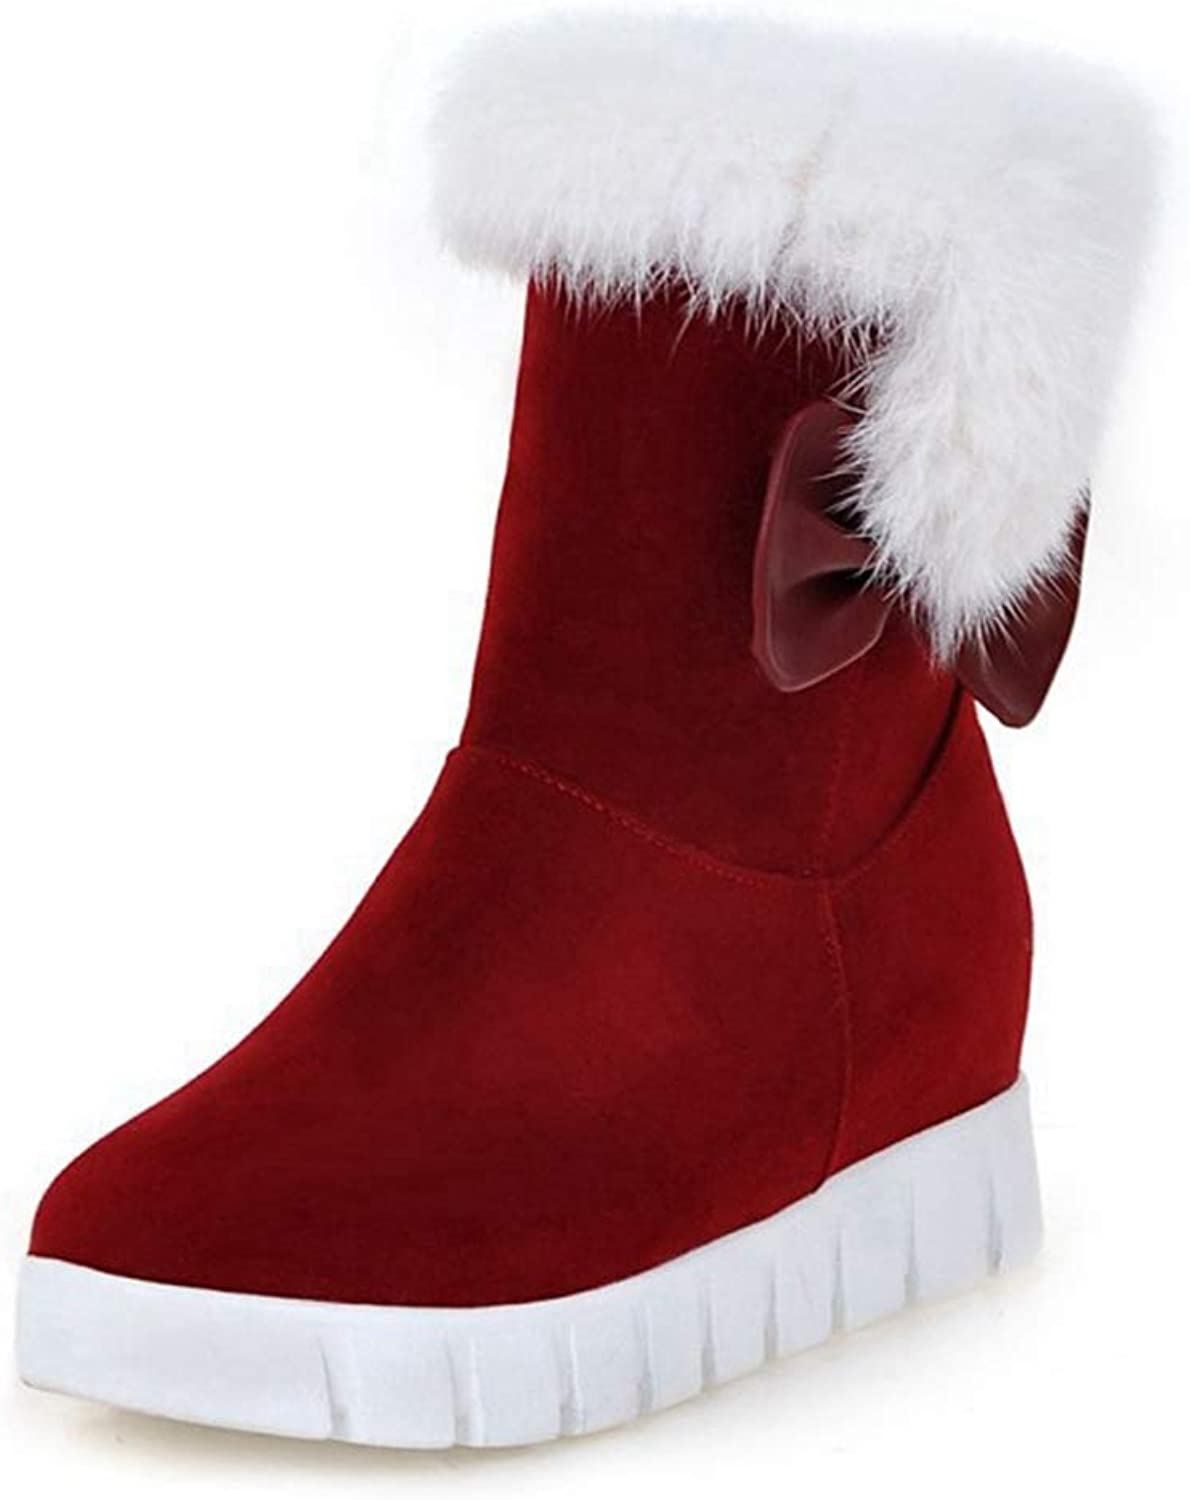 CYBLING Womens Fur Lined Snow Boots Suede Platform Wedges Winter Warm Bowknot Pull On Mid Calf Boots